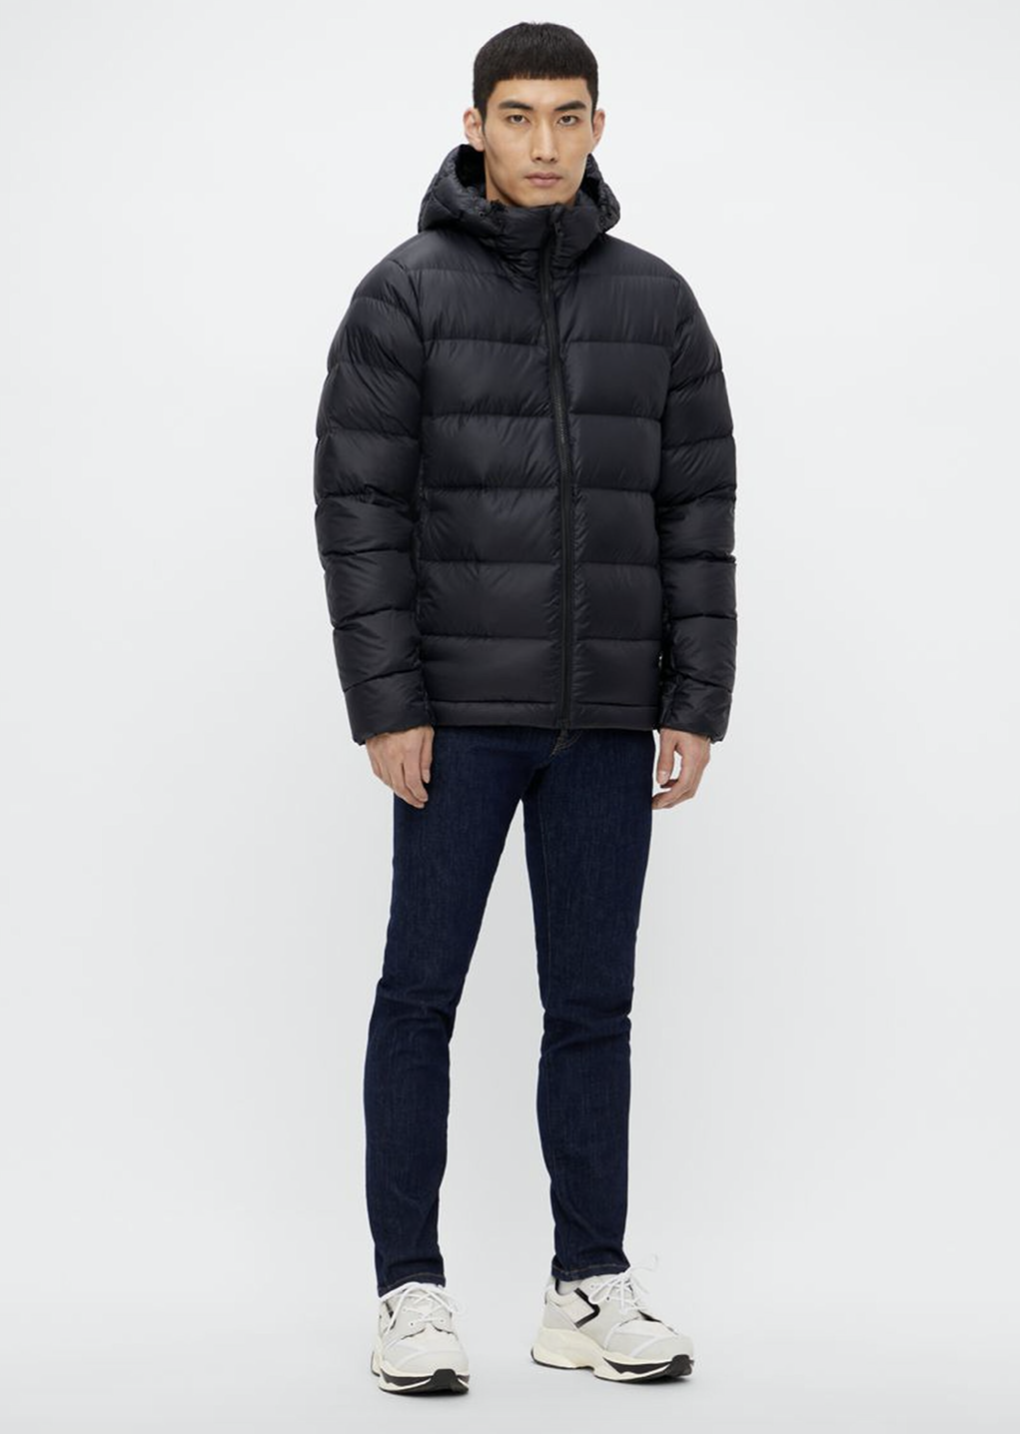 Bilde av Lindeberg Ross down jacket SMOW02277 9999 black